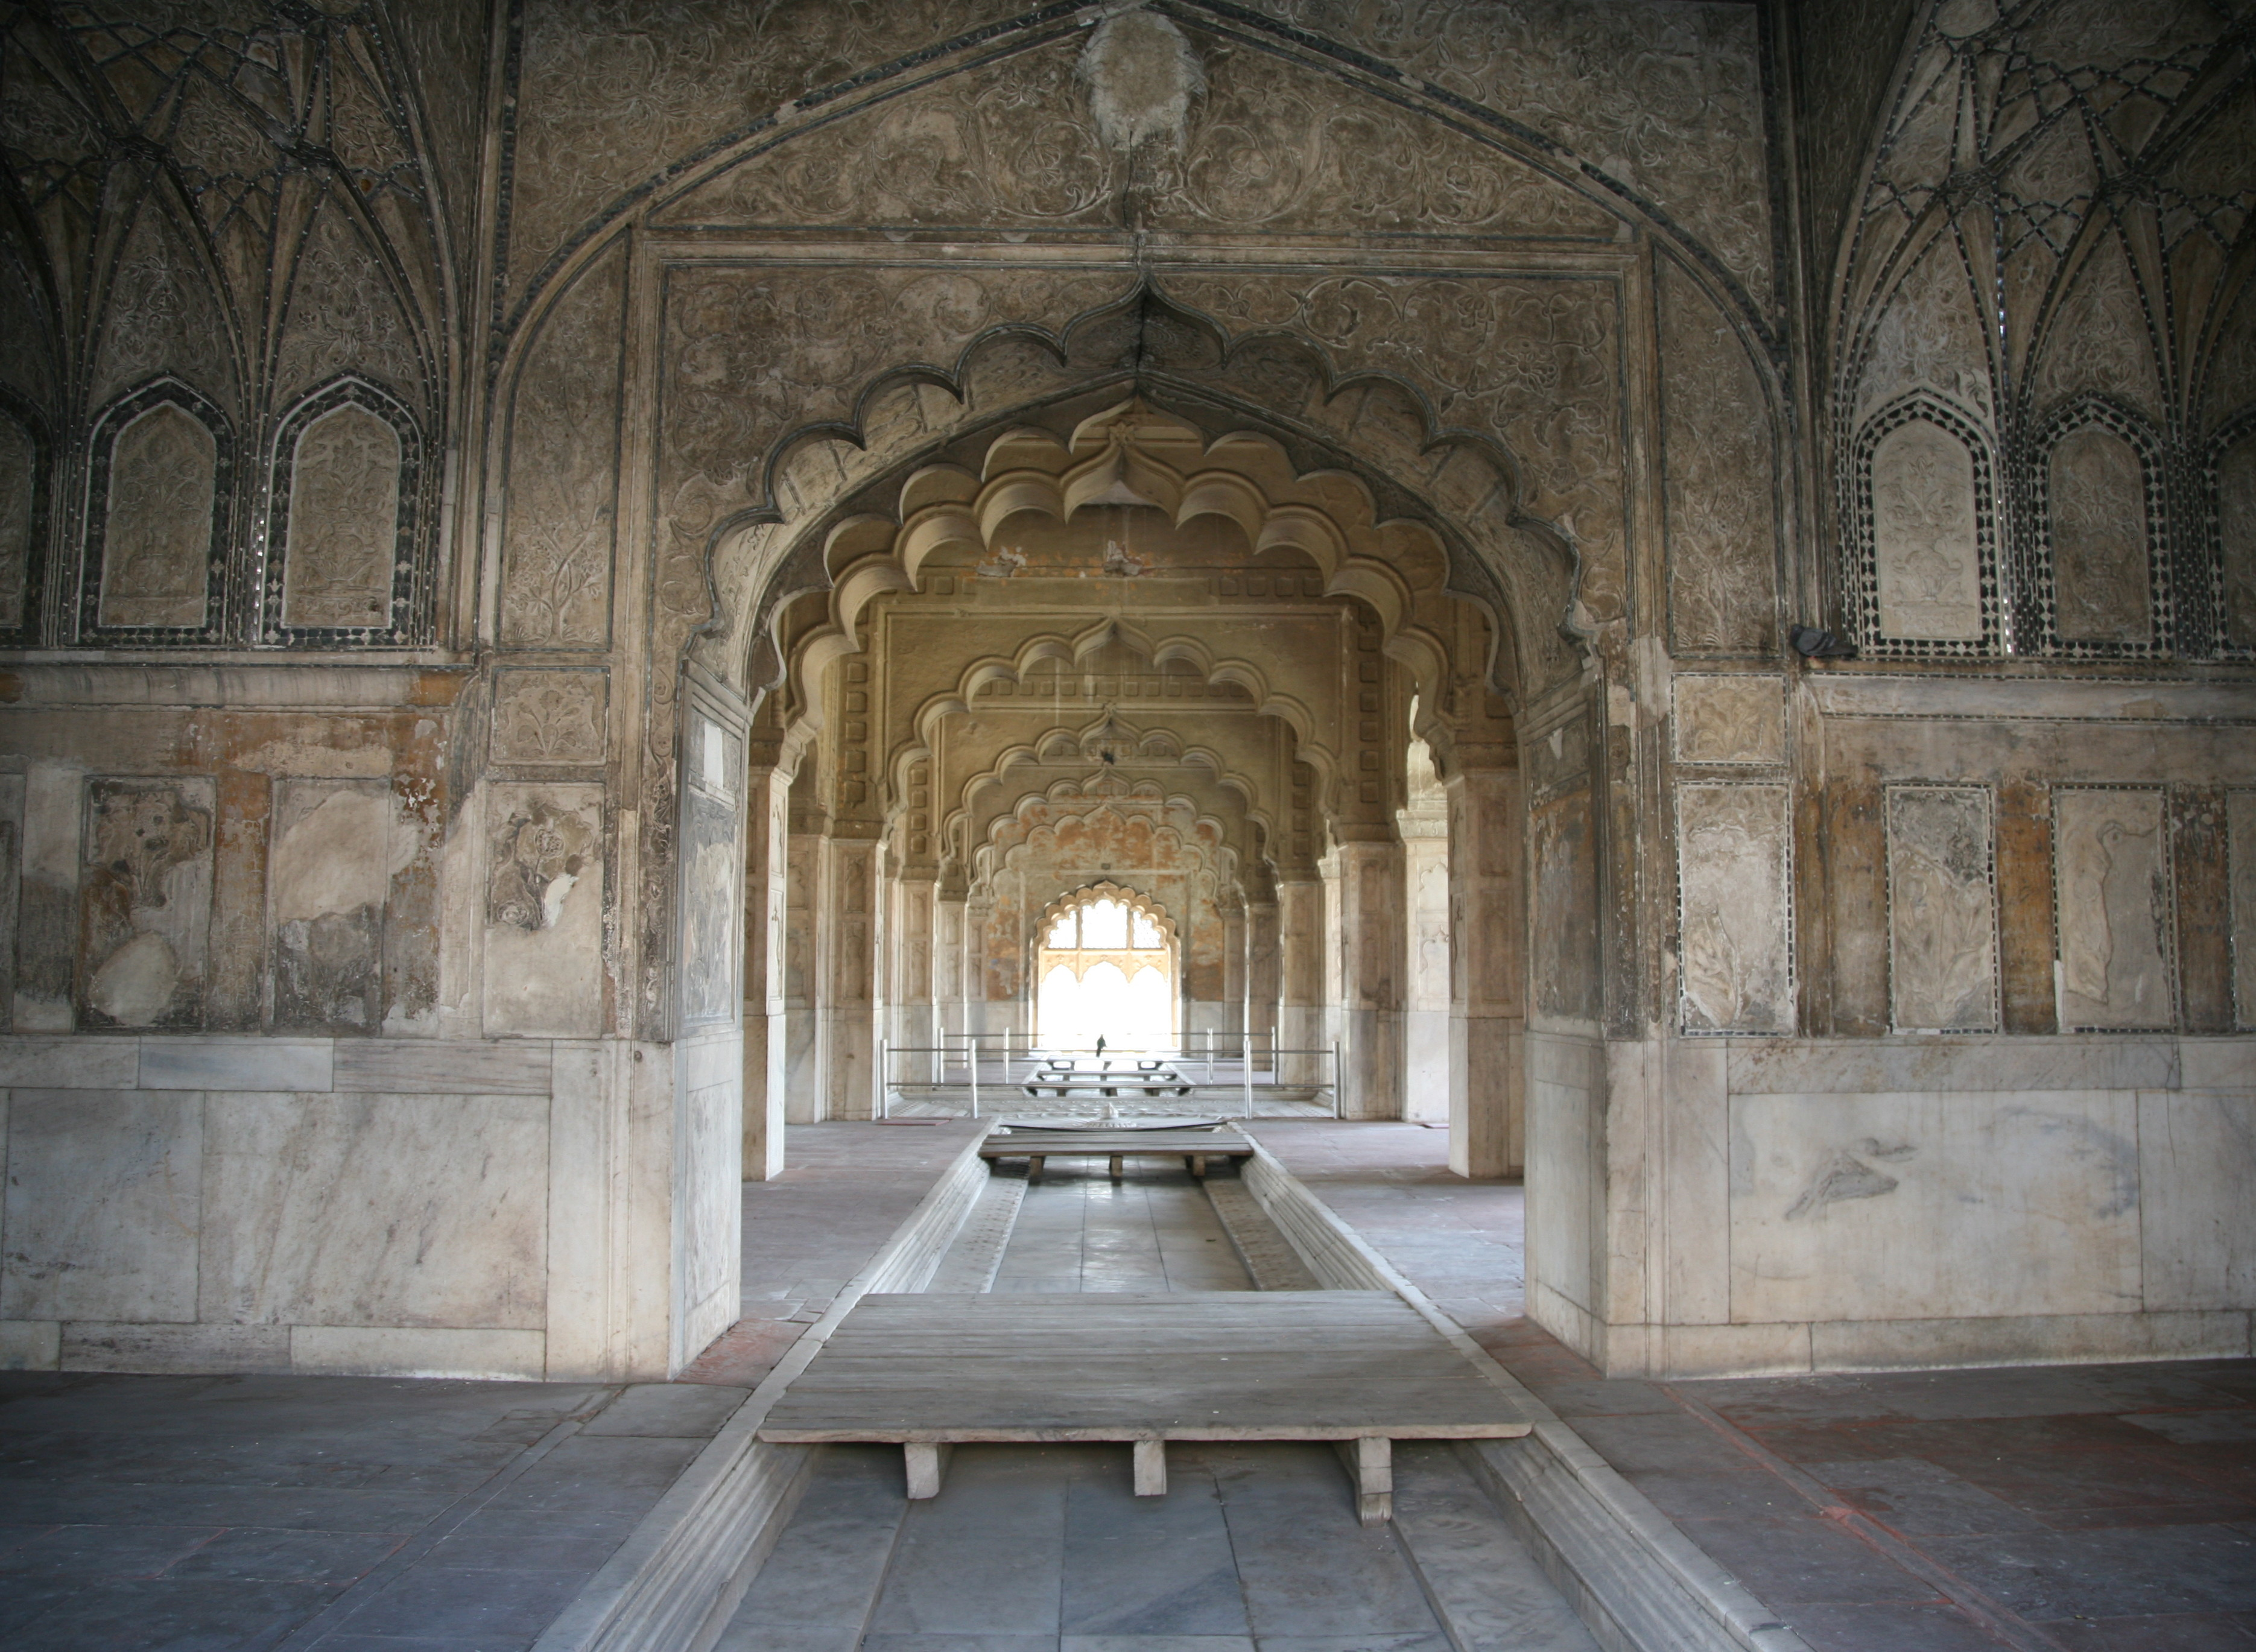 http://upload.wikimedia.org/wikipedia/commons/d/dd/RedFortDelhi-Rang-Mahal-20080210-3.jpg